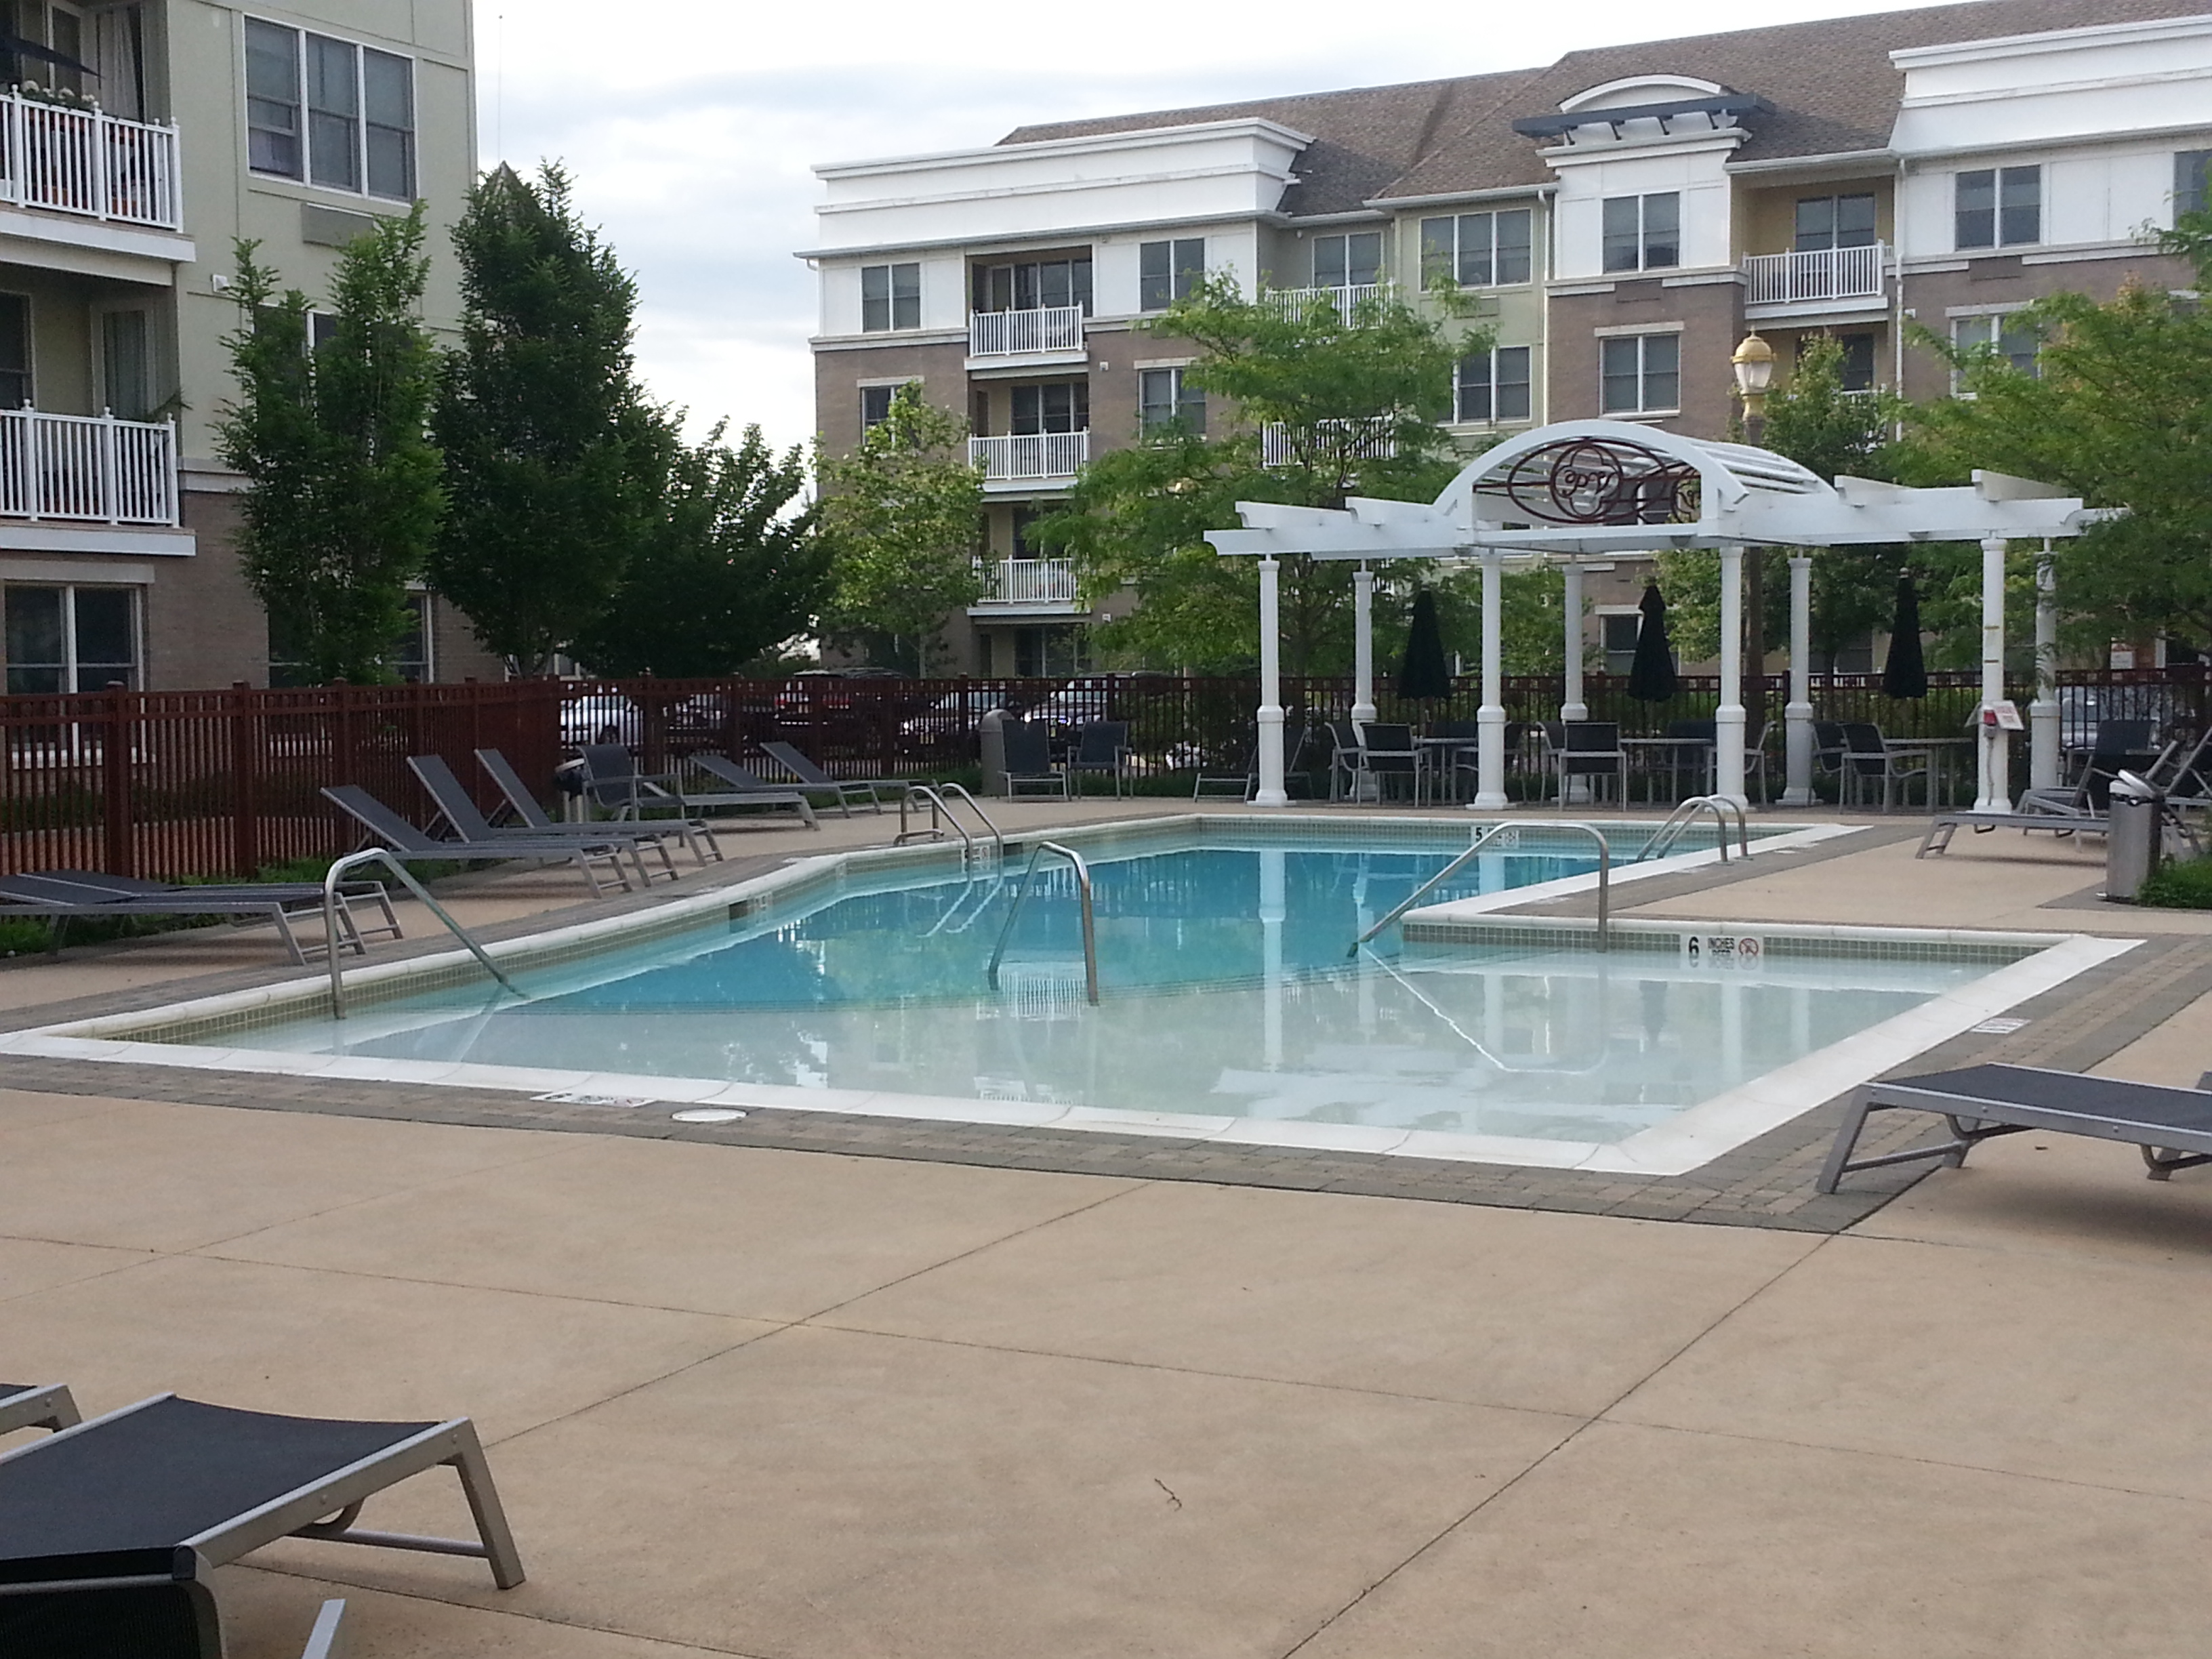 Among the amenities at 55  Melrose, is this pool which is located right outside the main entrance.